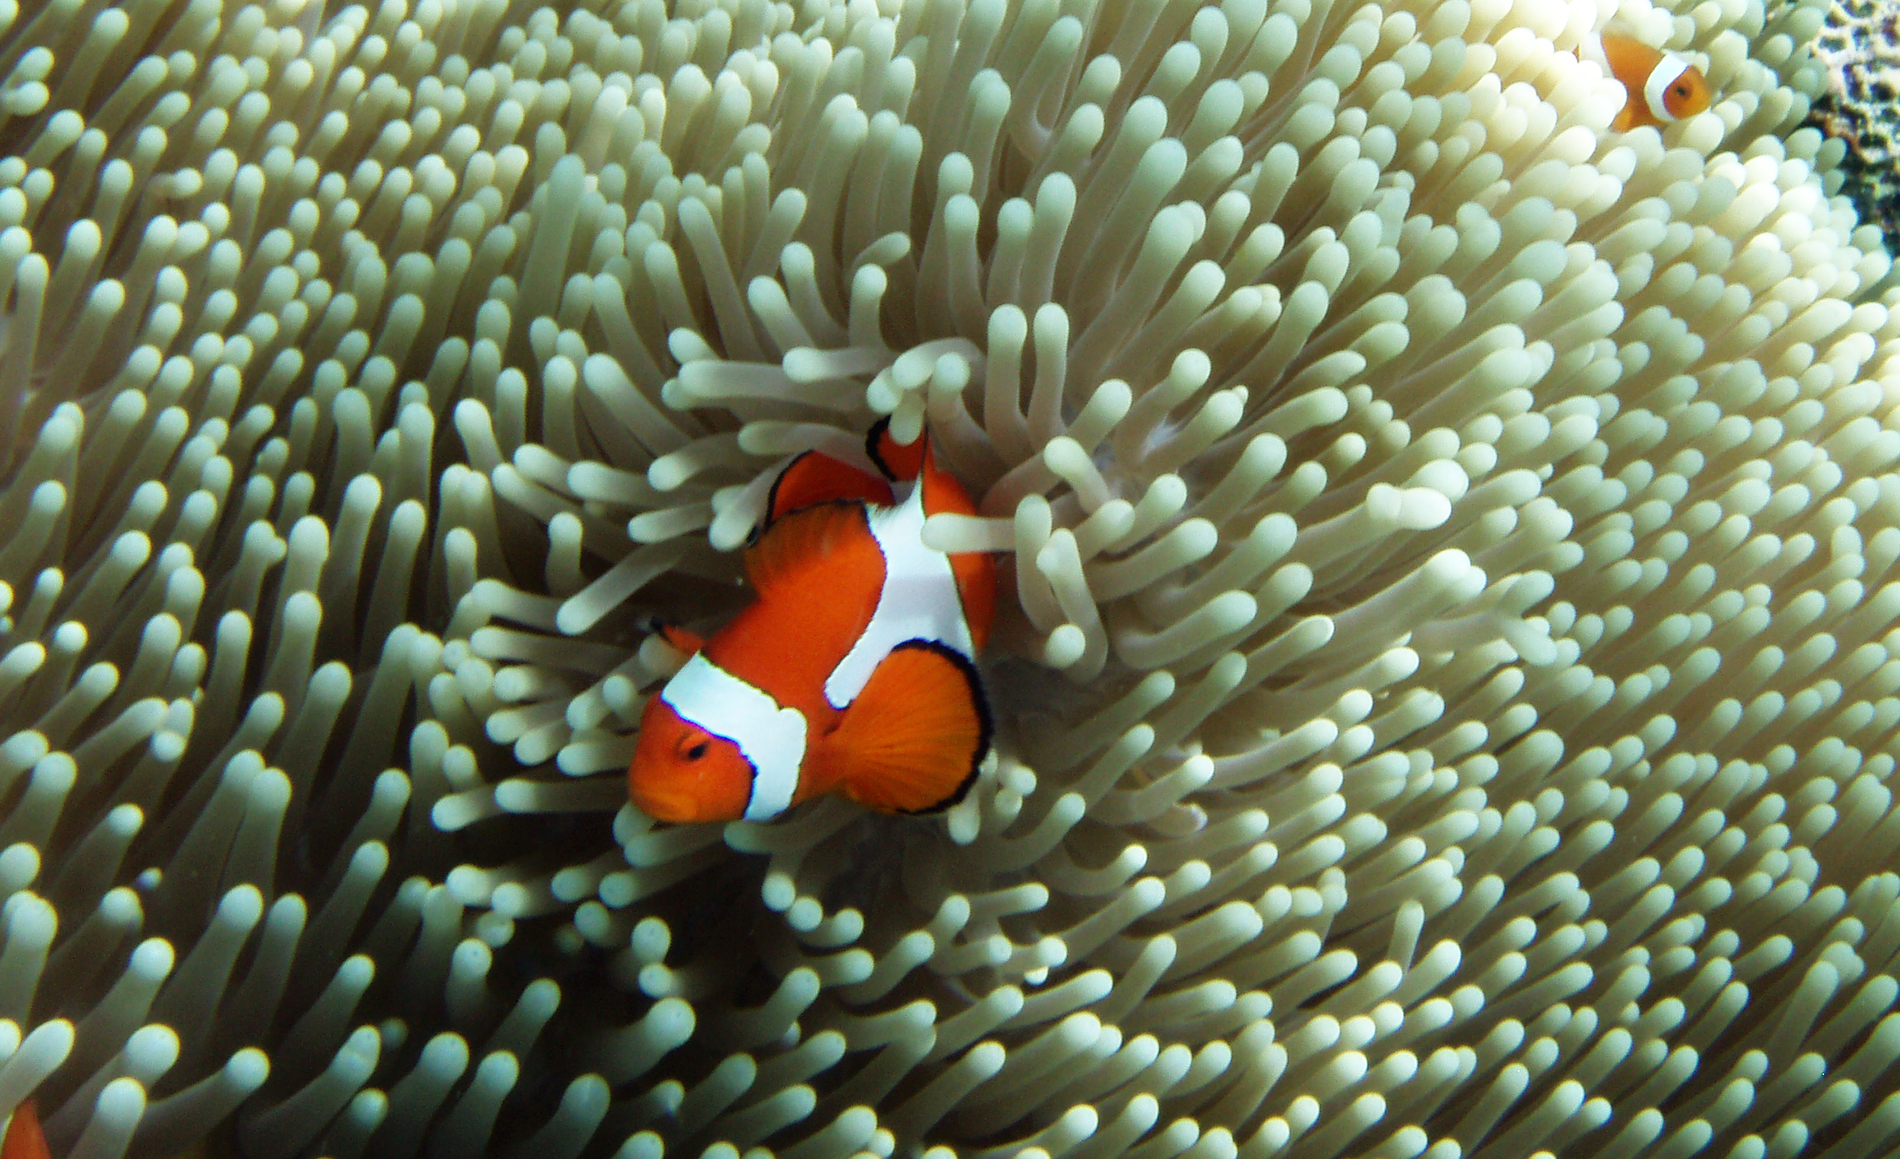 Amphiprion ocellaris at Raja Ampat